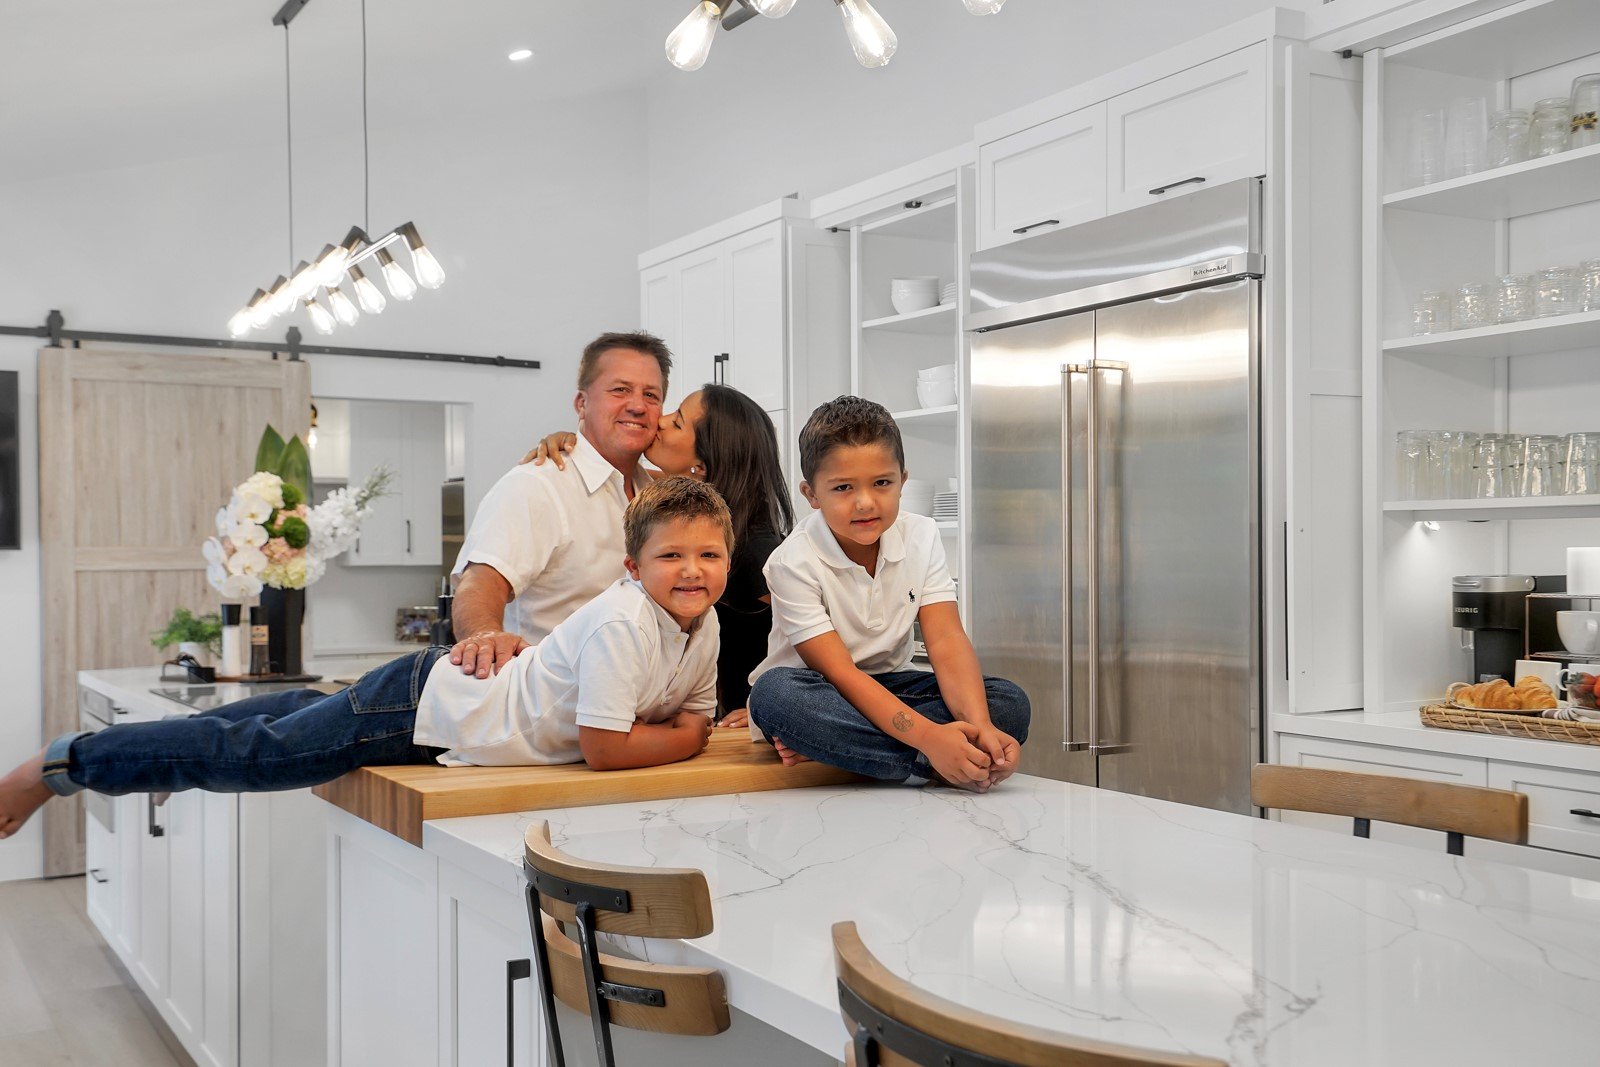 Kitchen Cabinet Design in Pinecrest, Palmetto Bay, Coral Gables, Ocean Reef, Key Largo, and Kendall